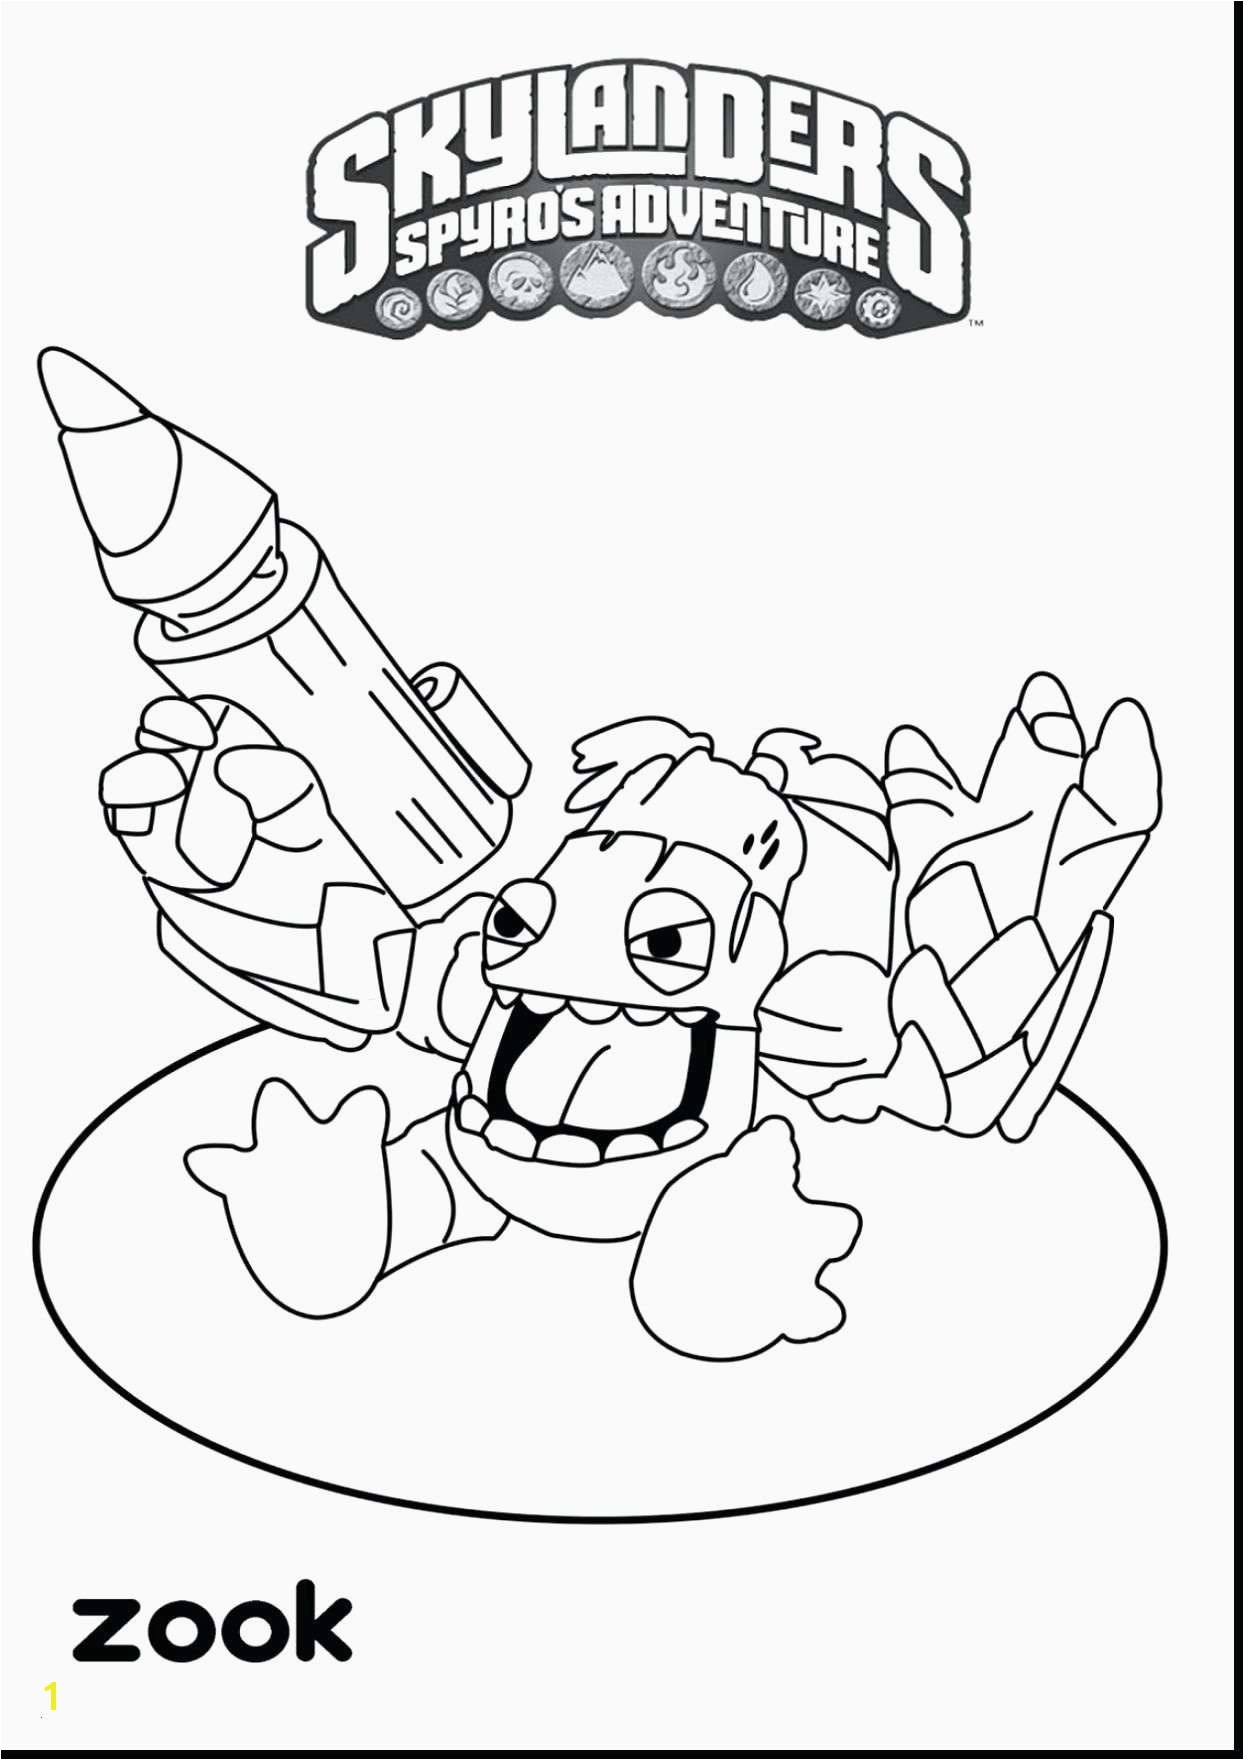 Kids Coloring Pages Beautiful Coloring Page Websites New Witch Coloring Pages New Crayola Pages 0d